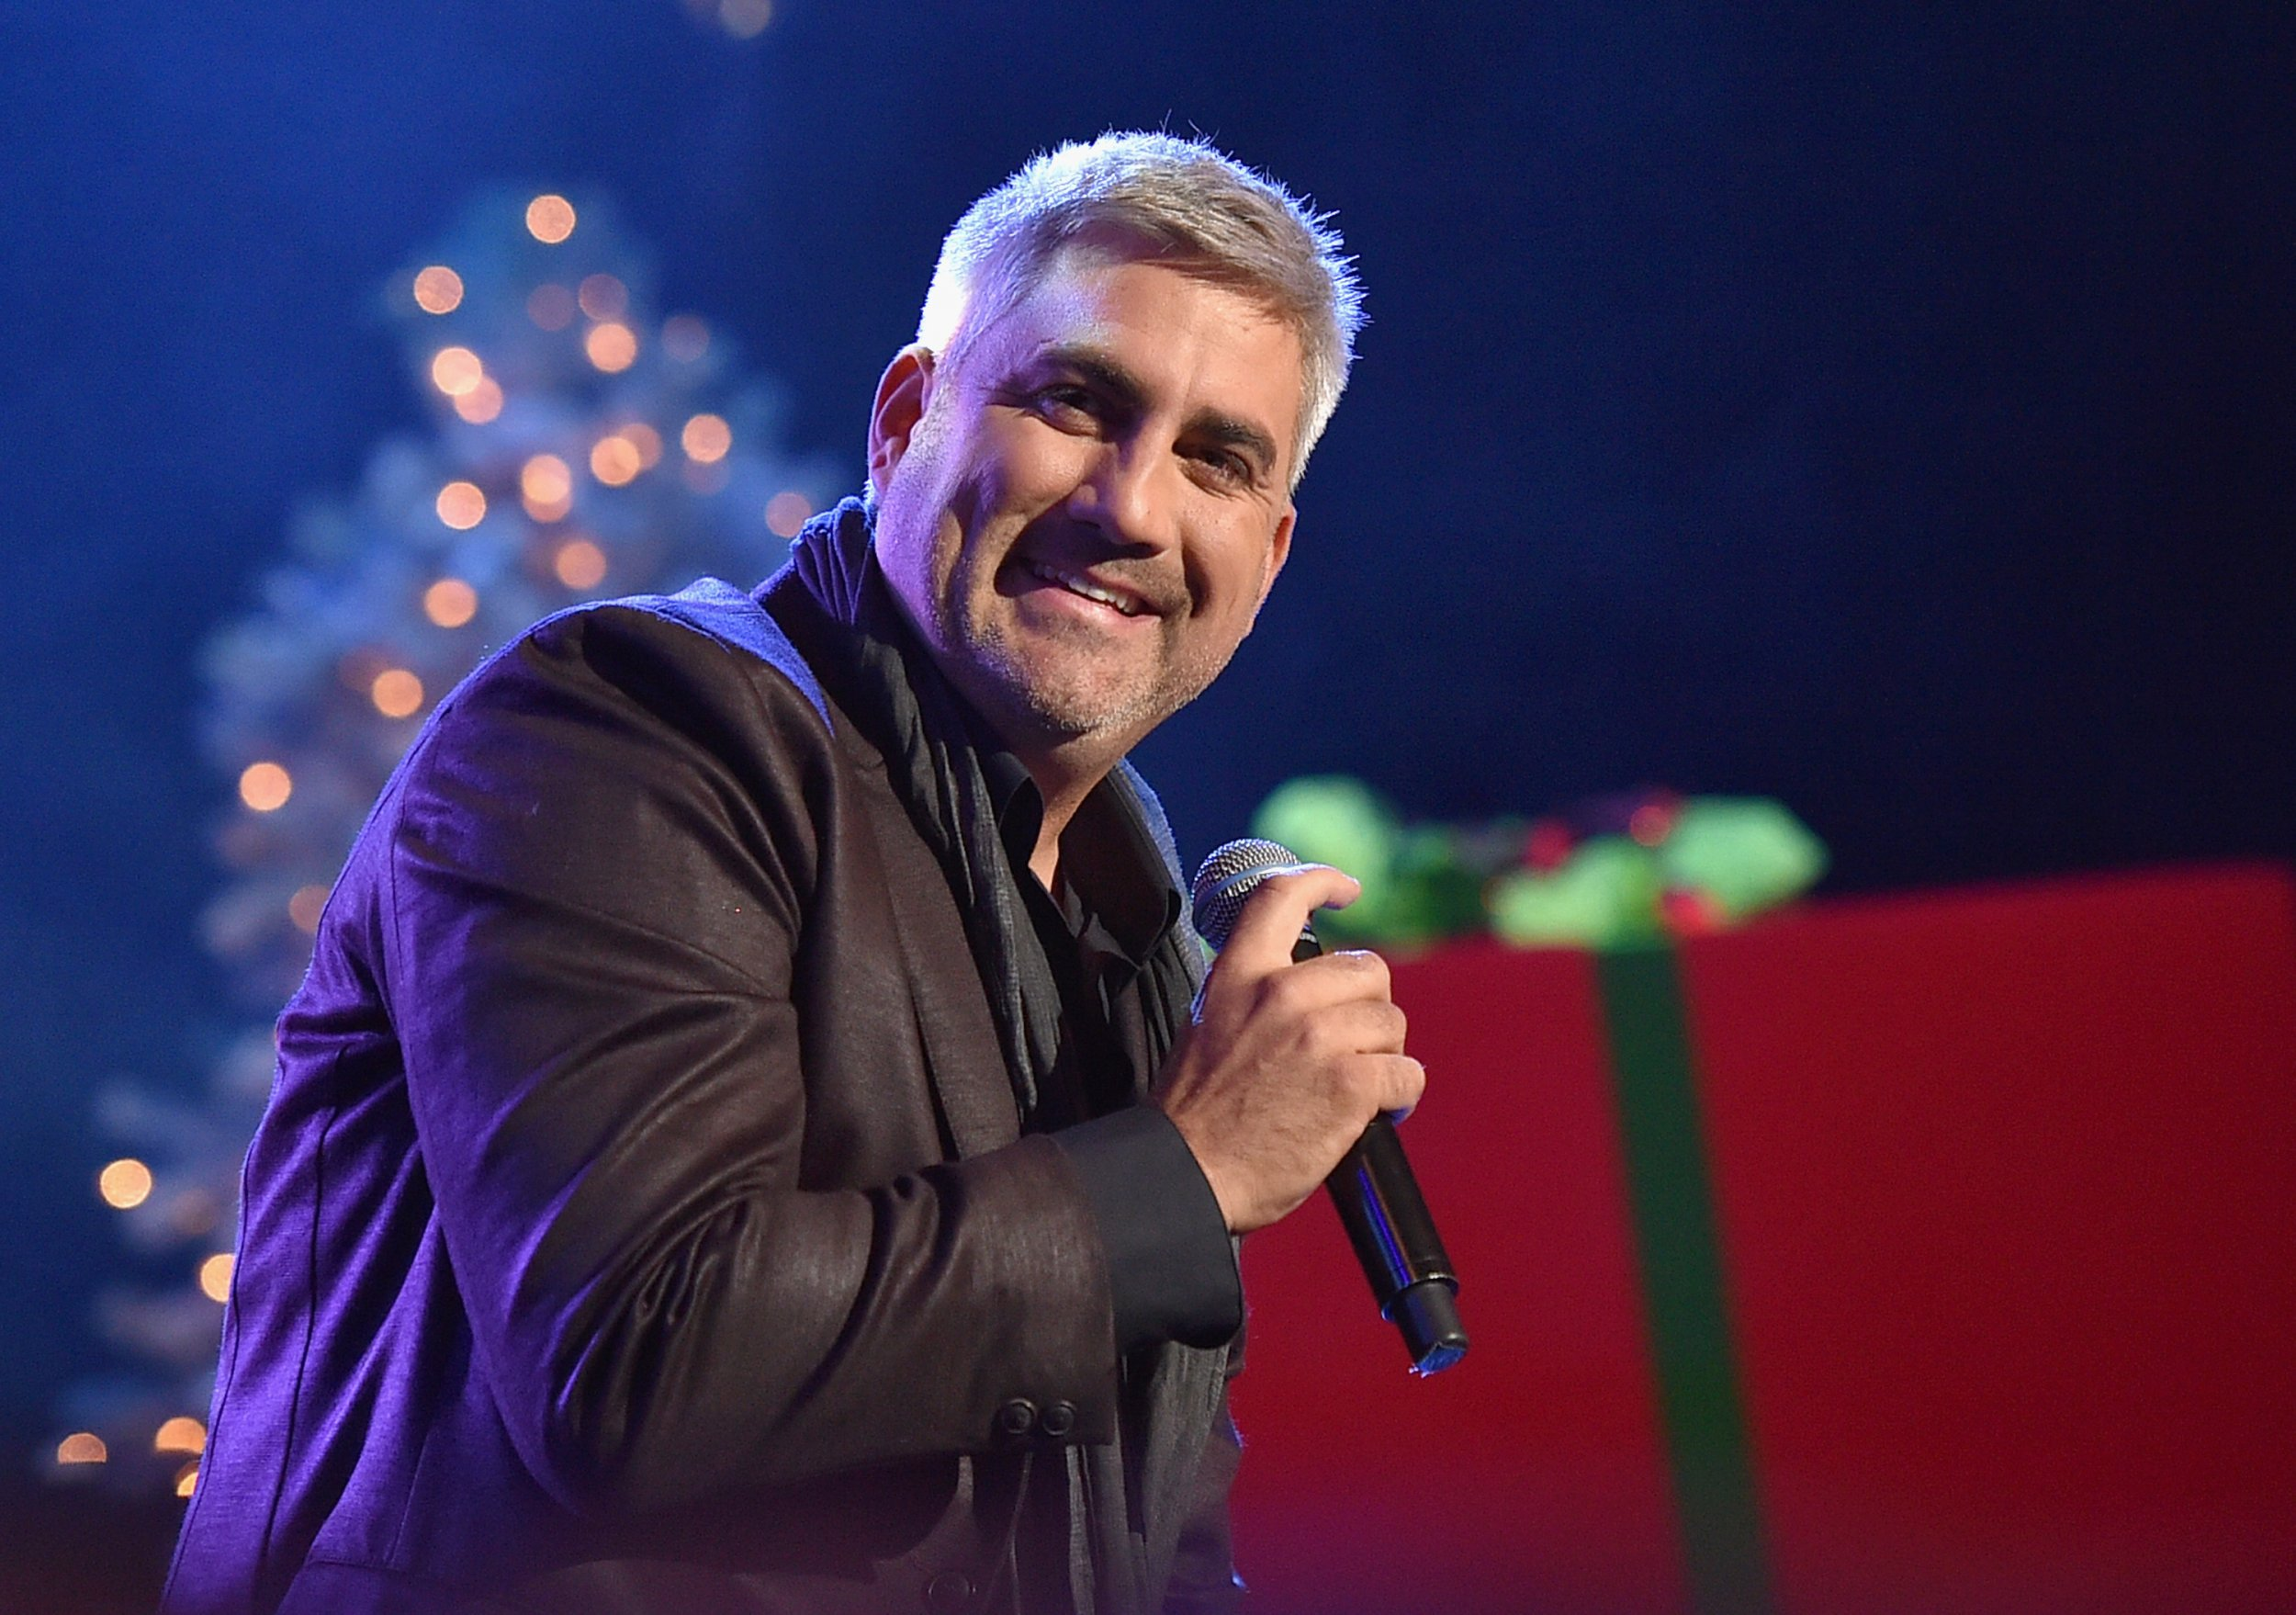 Where Are Previous 'American Idol' Winners Now? – Taylor Hicks